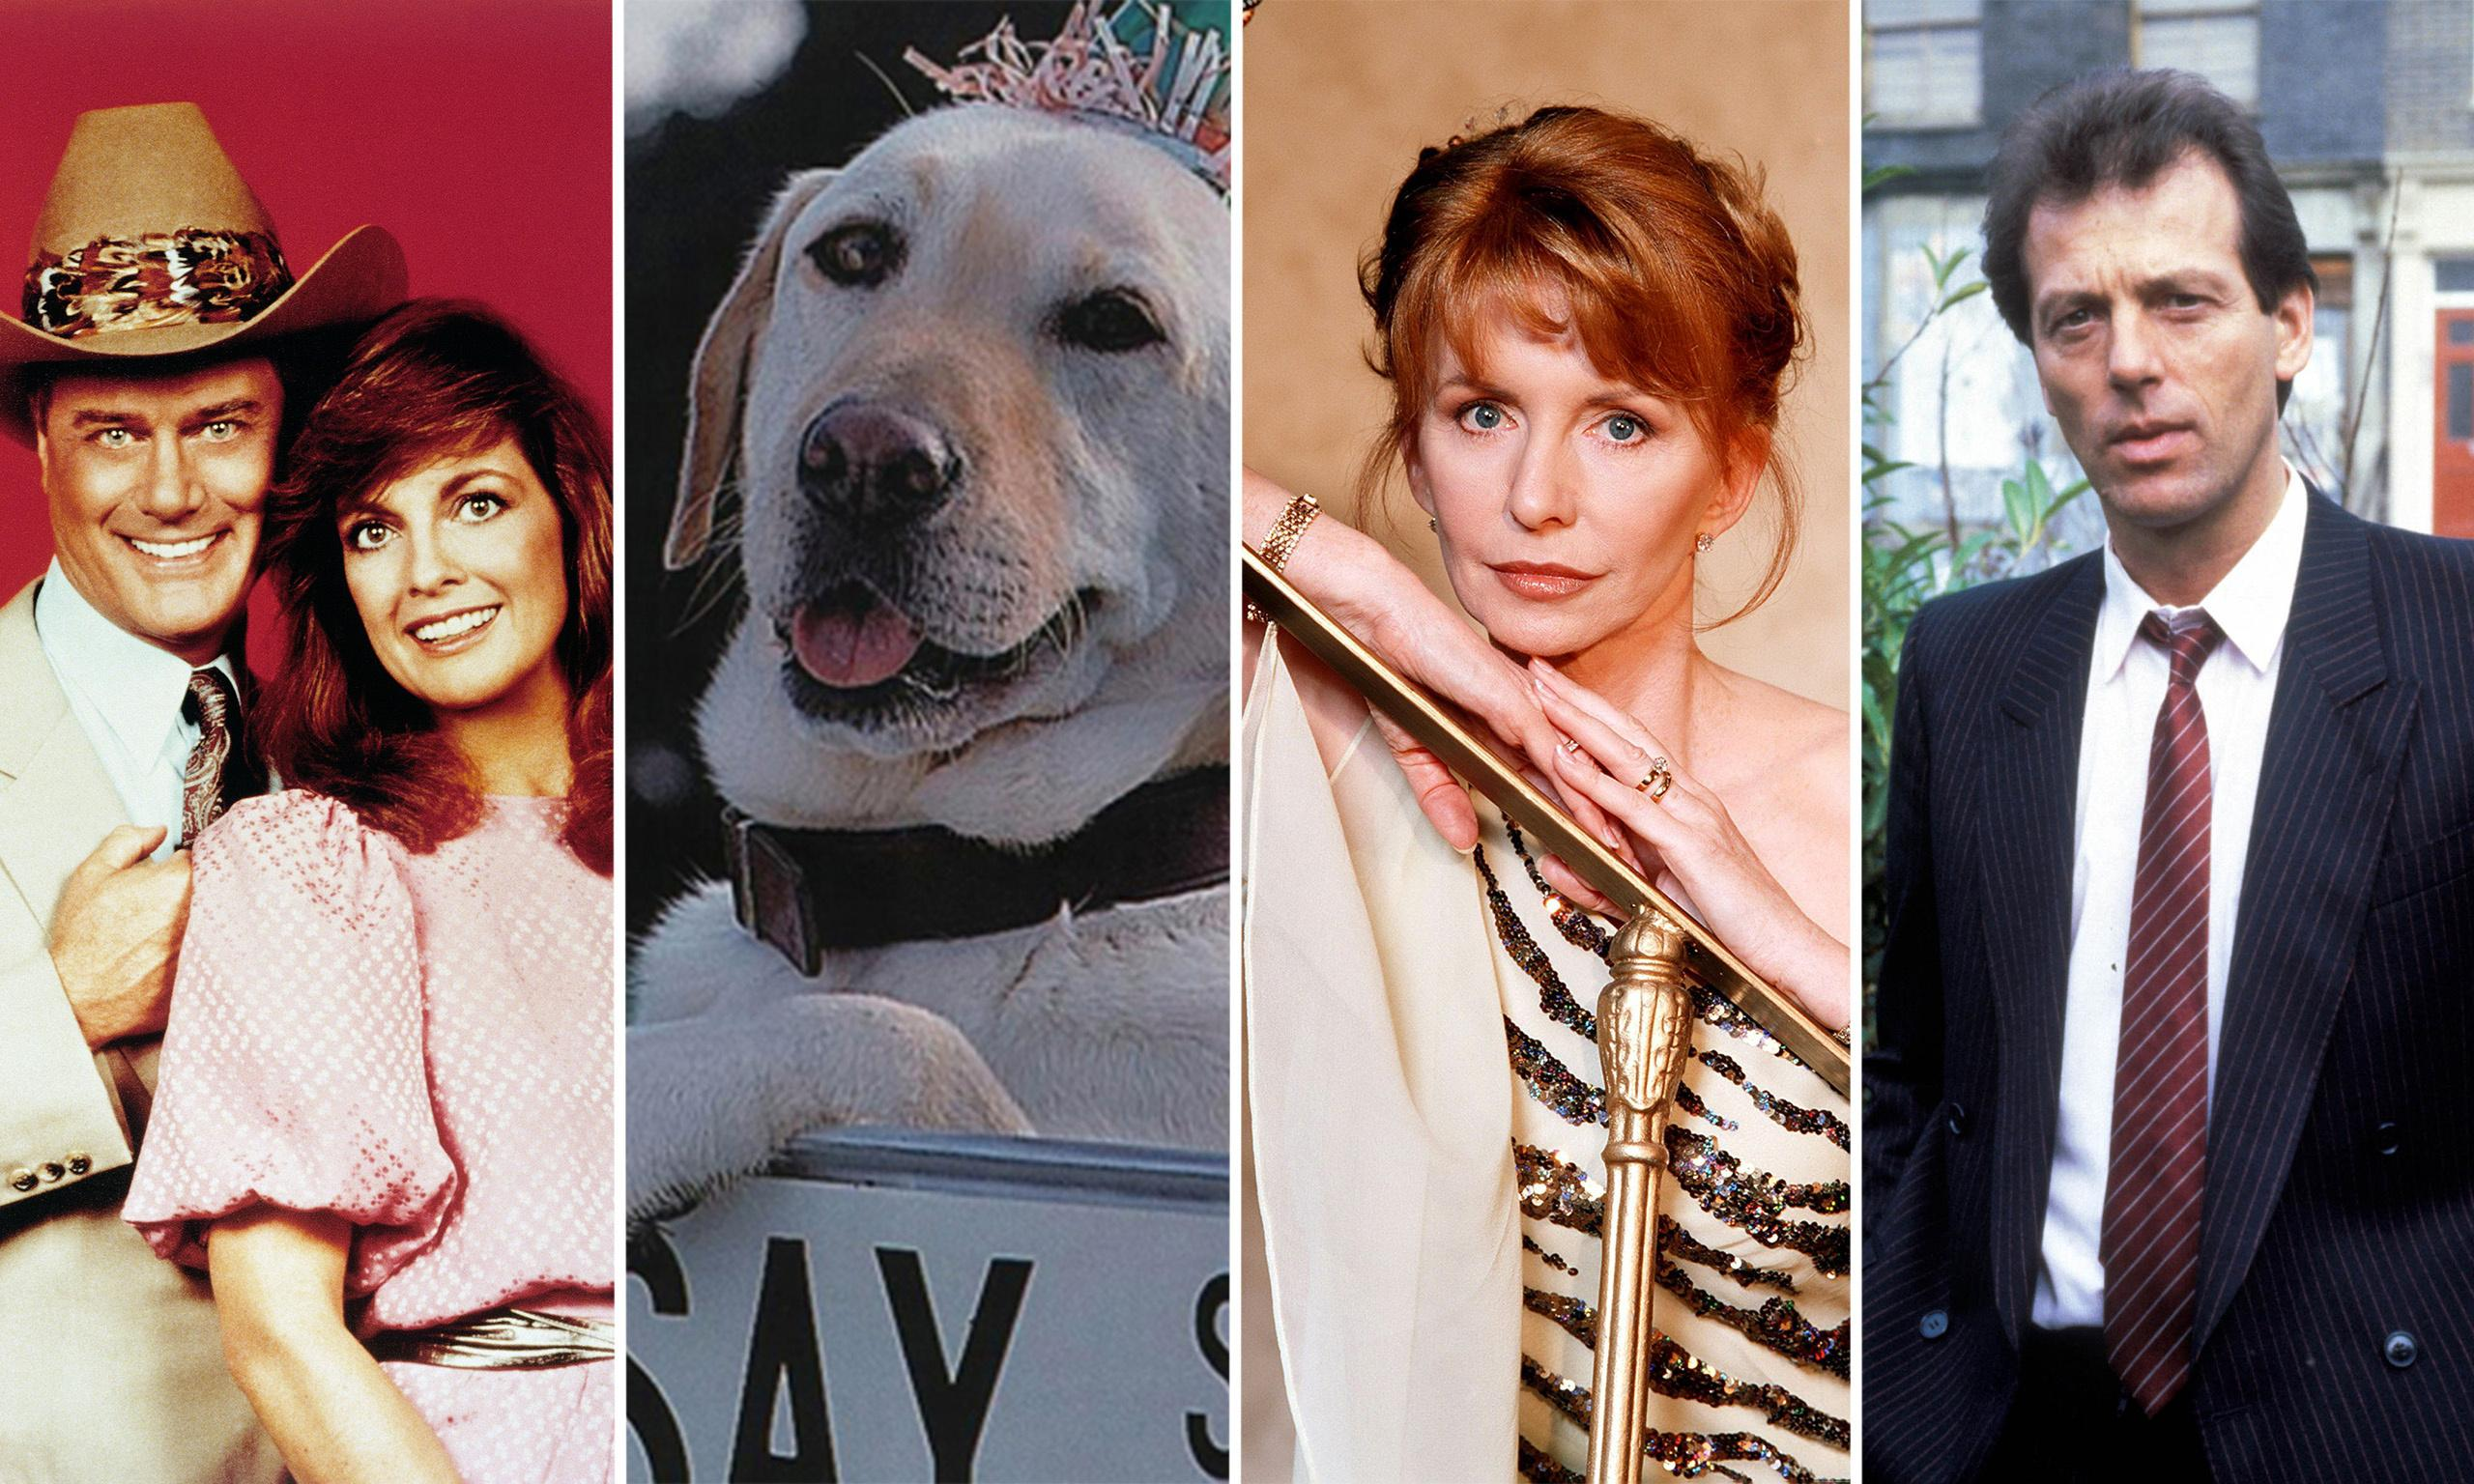 'You ain't my muvva!' – the 15 most incredible soap storylines of all time